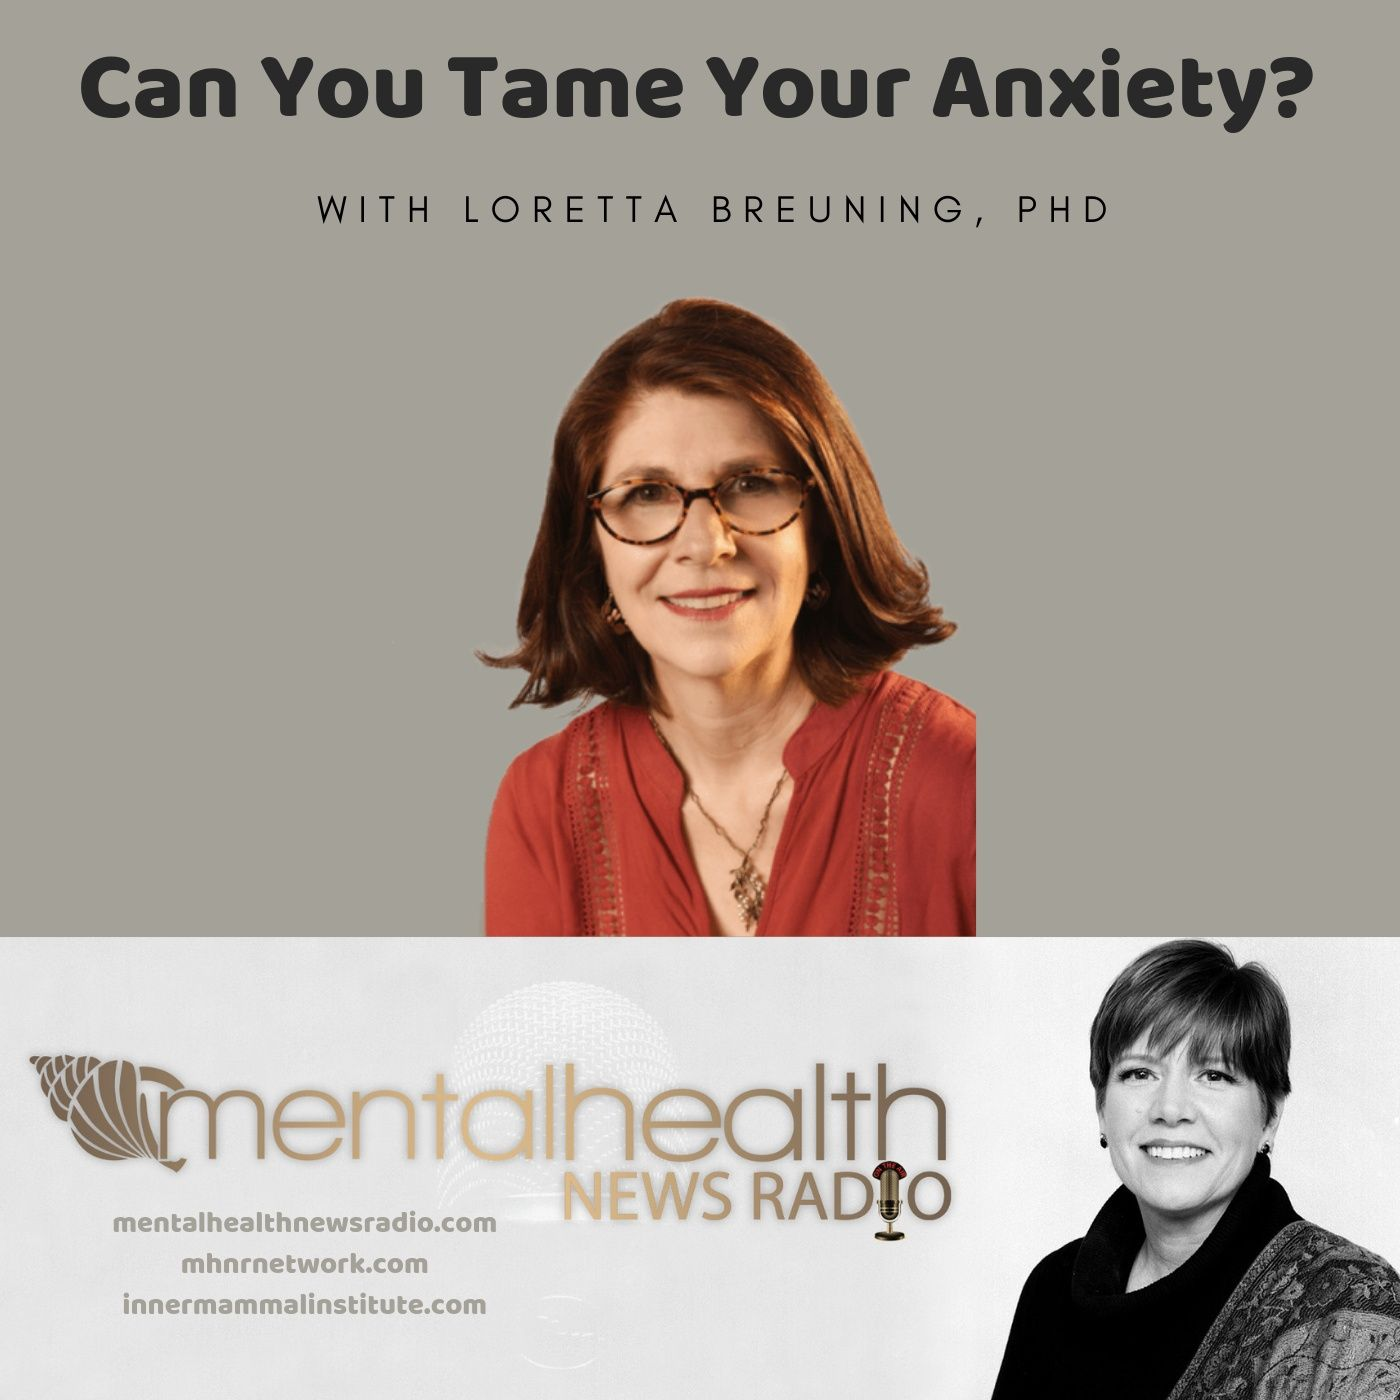 Mental Health News Radio - Can You Tame Your Anxiety?